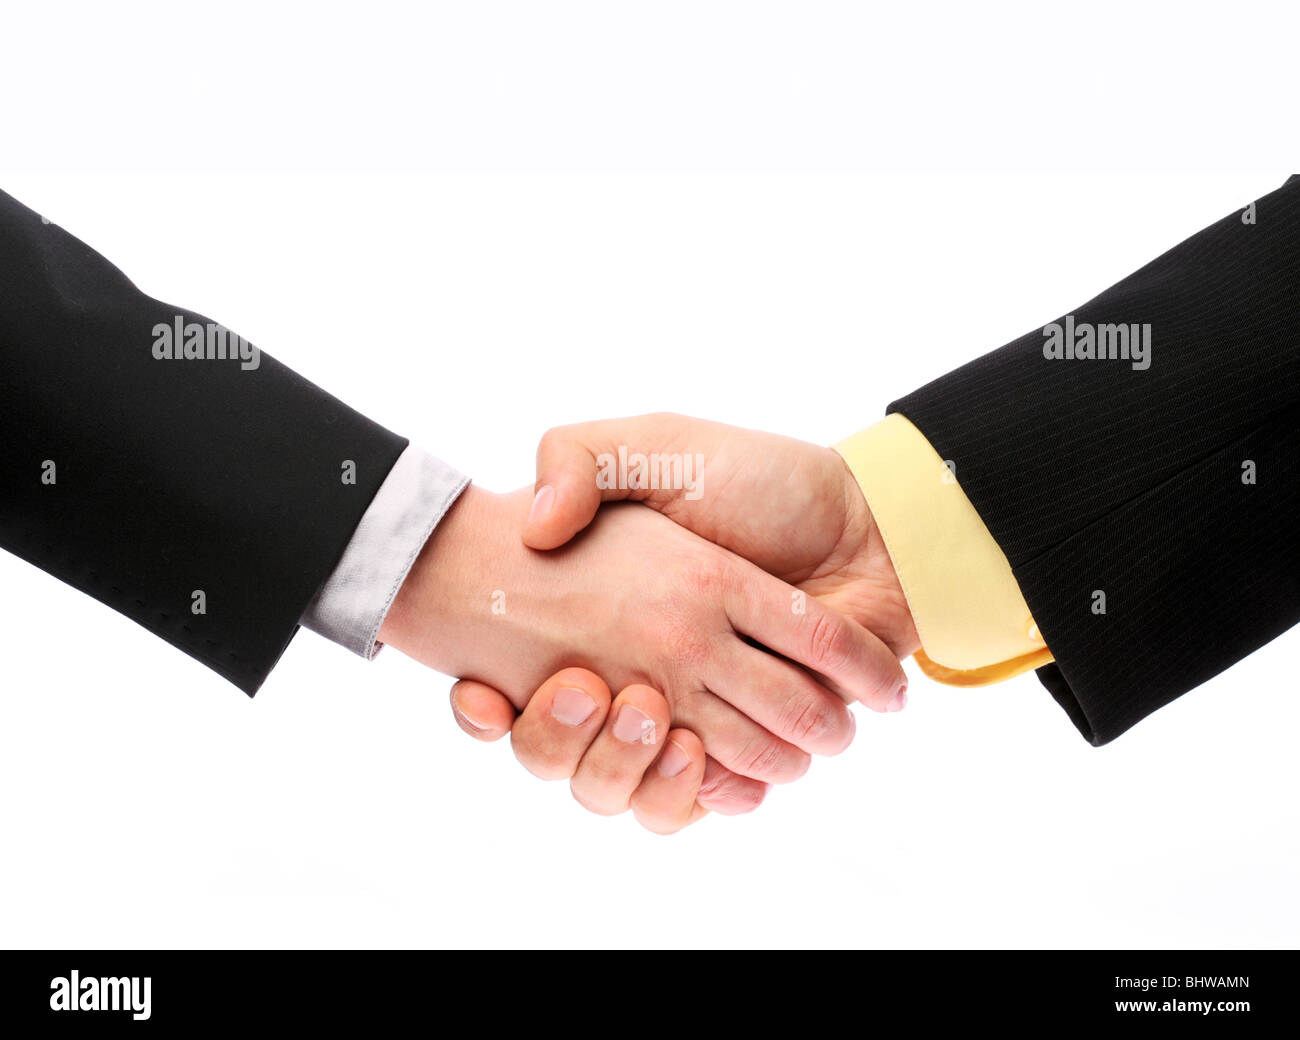 handshake, men and women on a white background - Stock Image